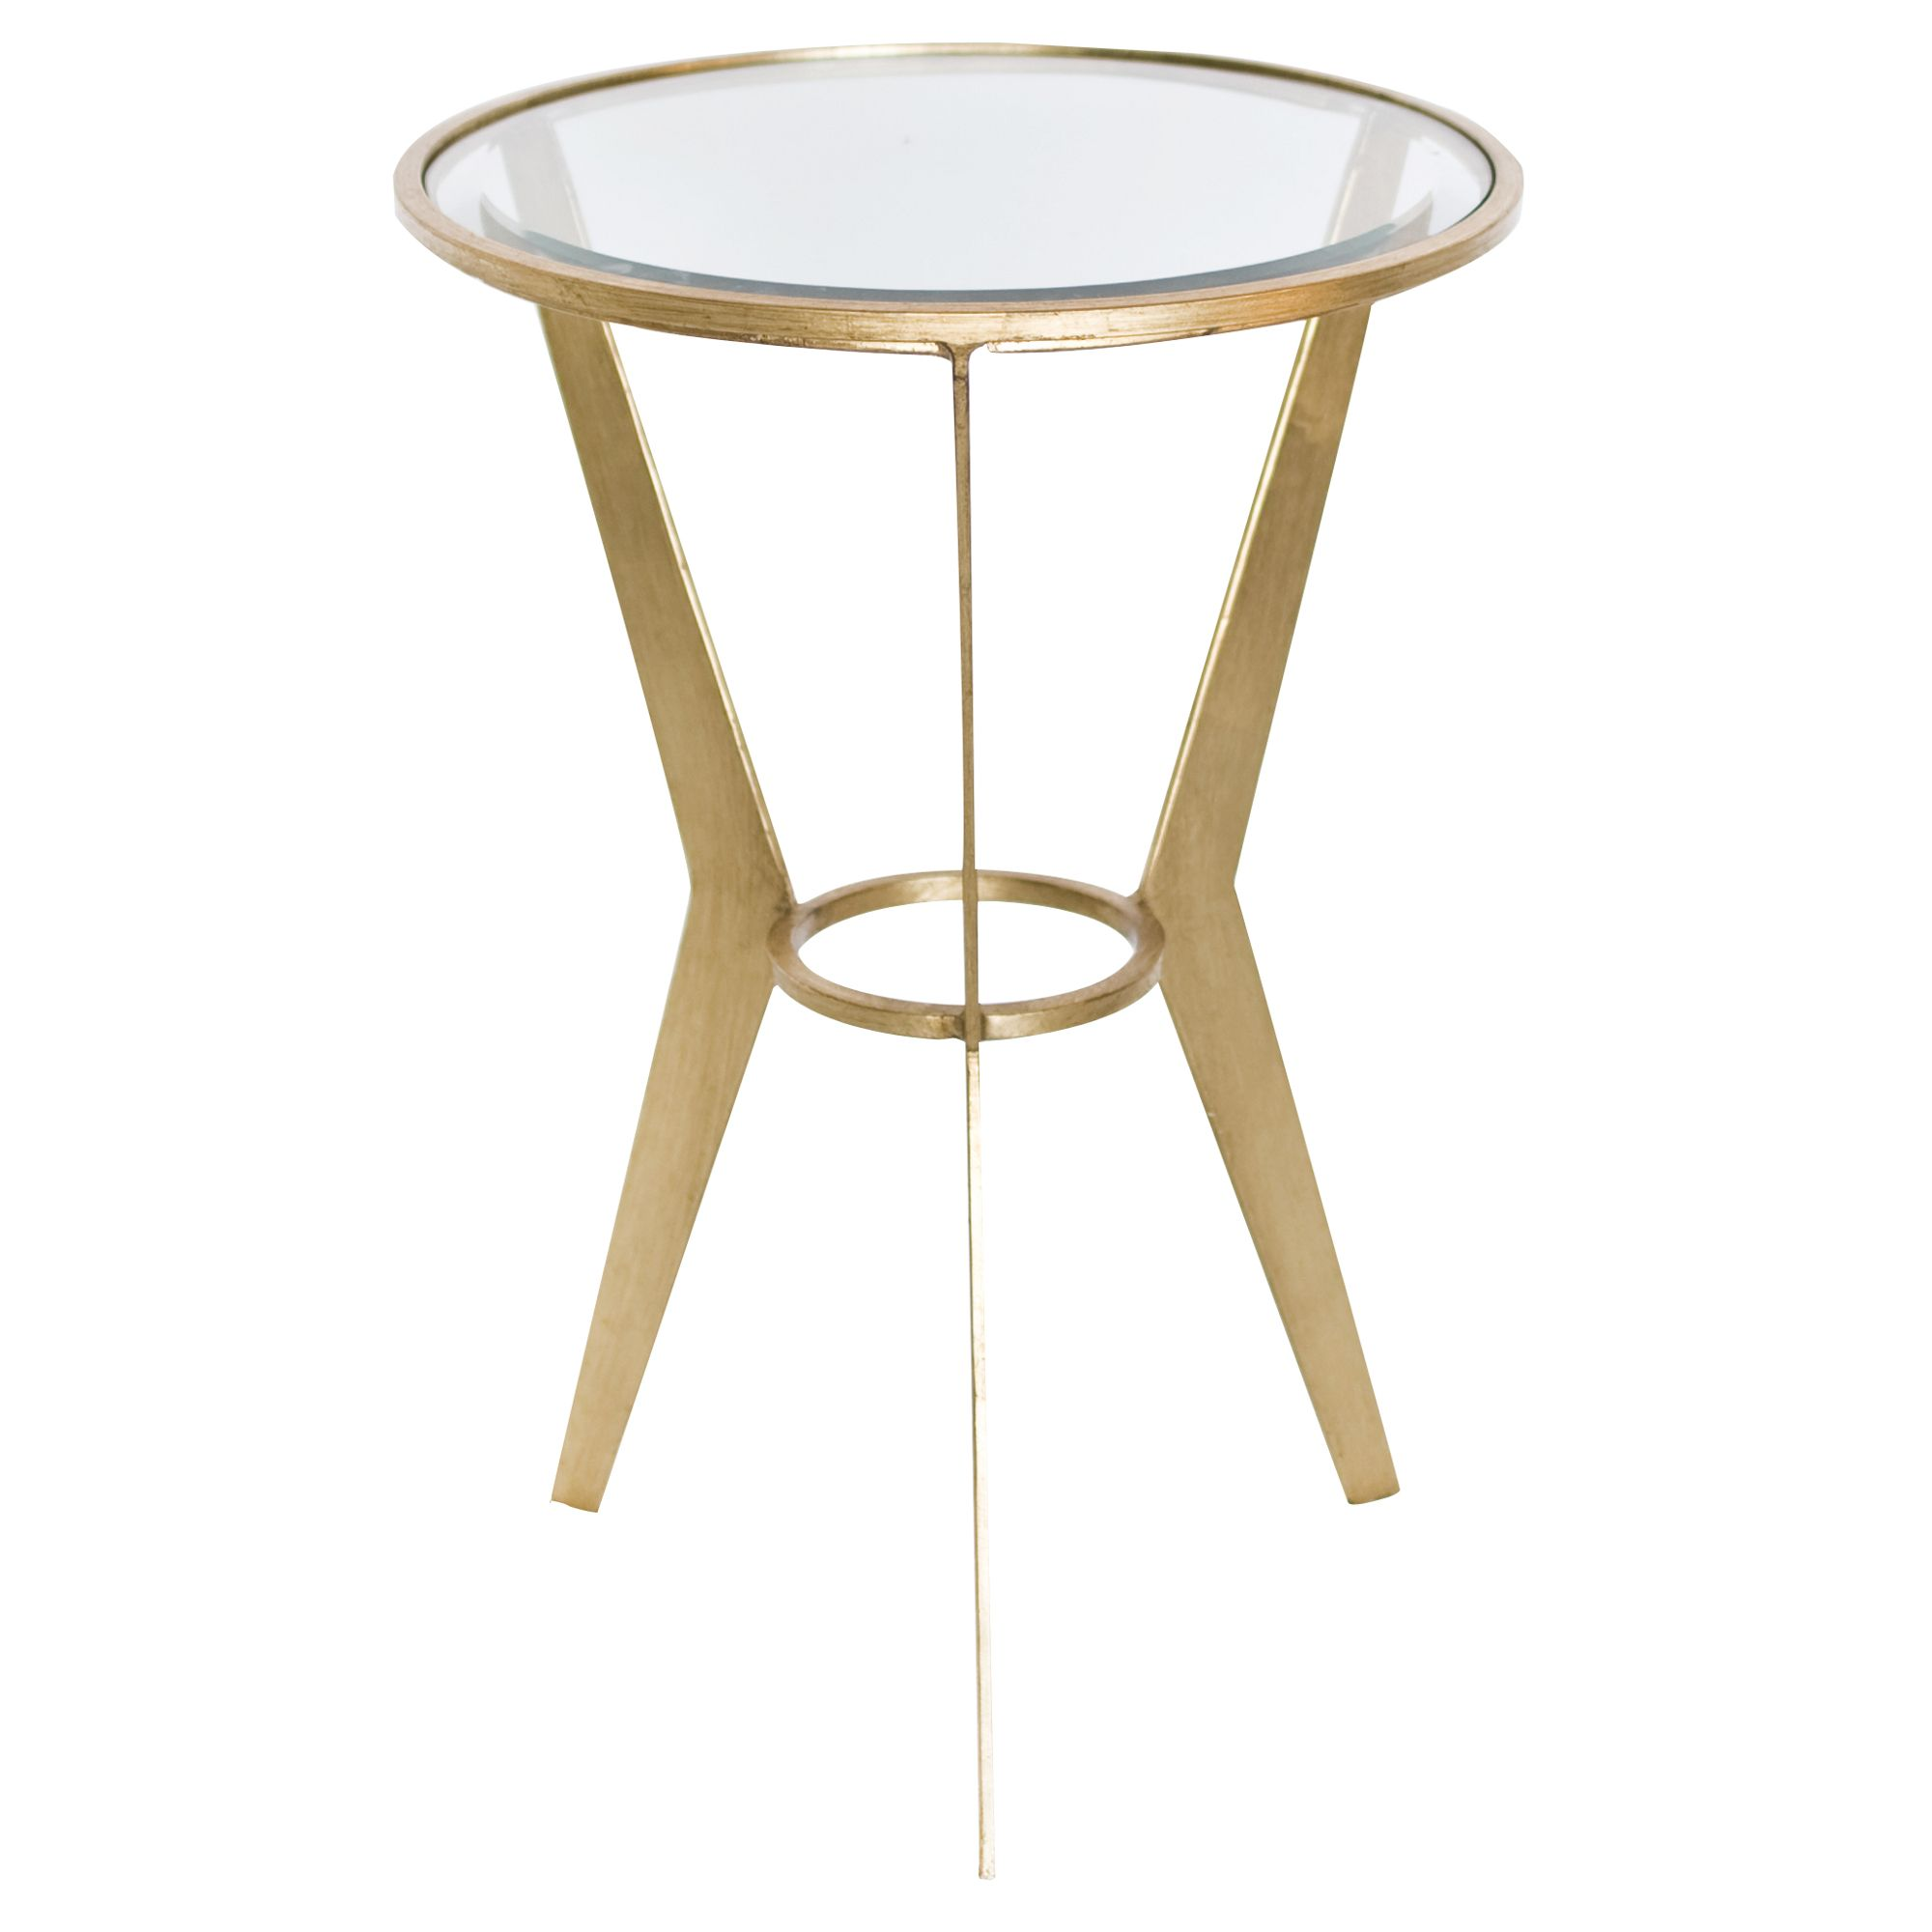 retro mid century side table in gold leaf with beveled clear glass top